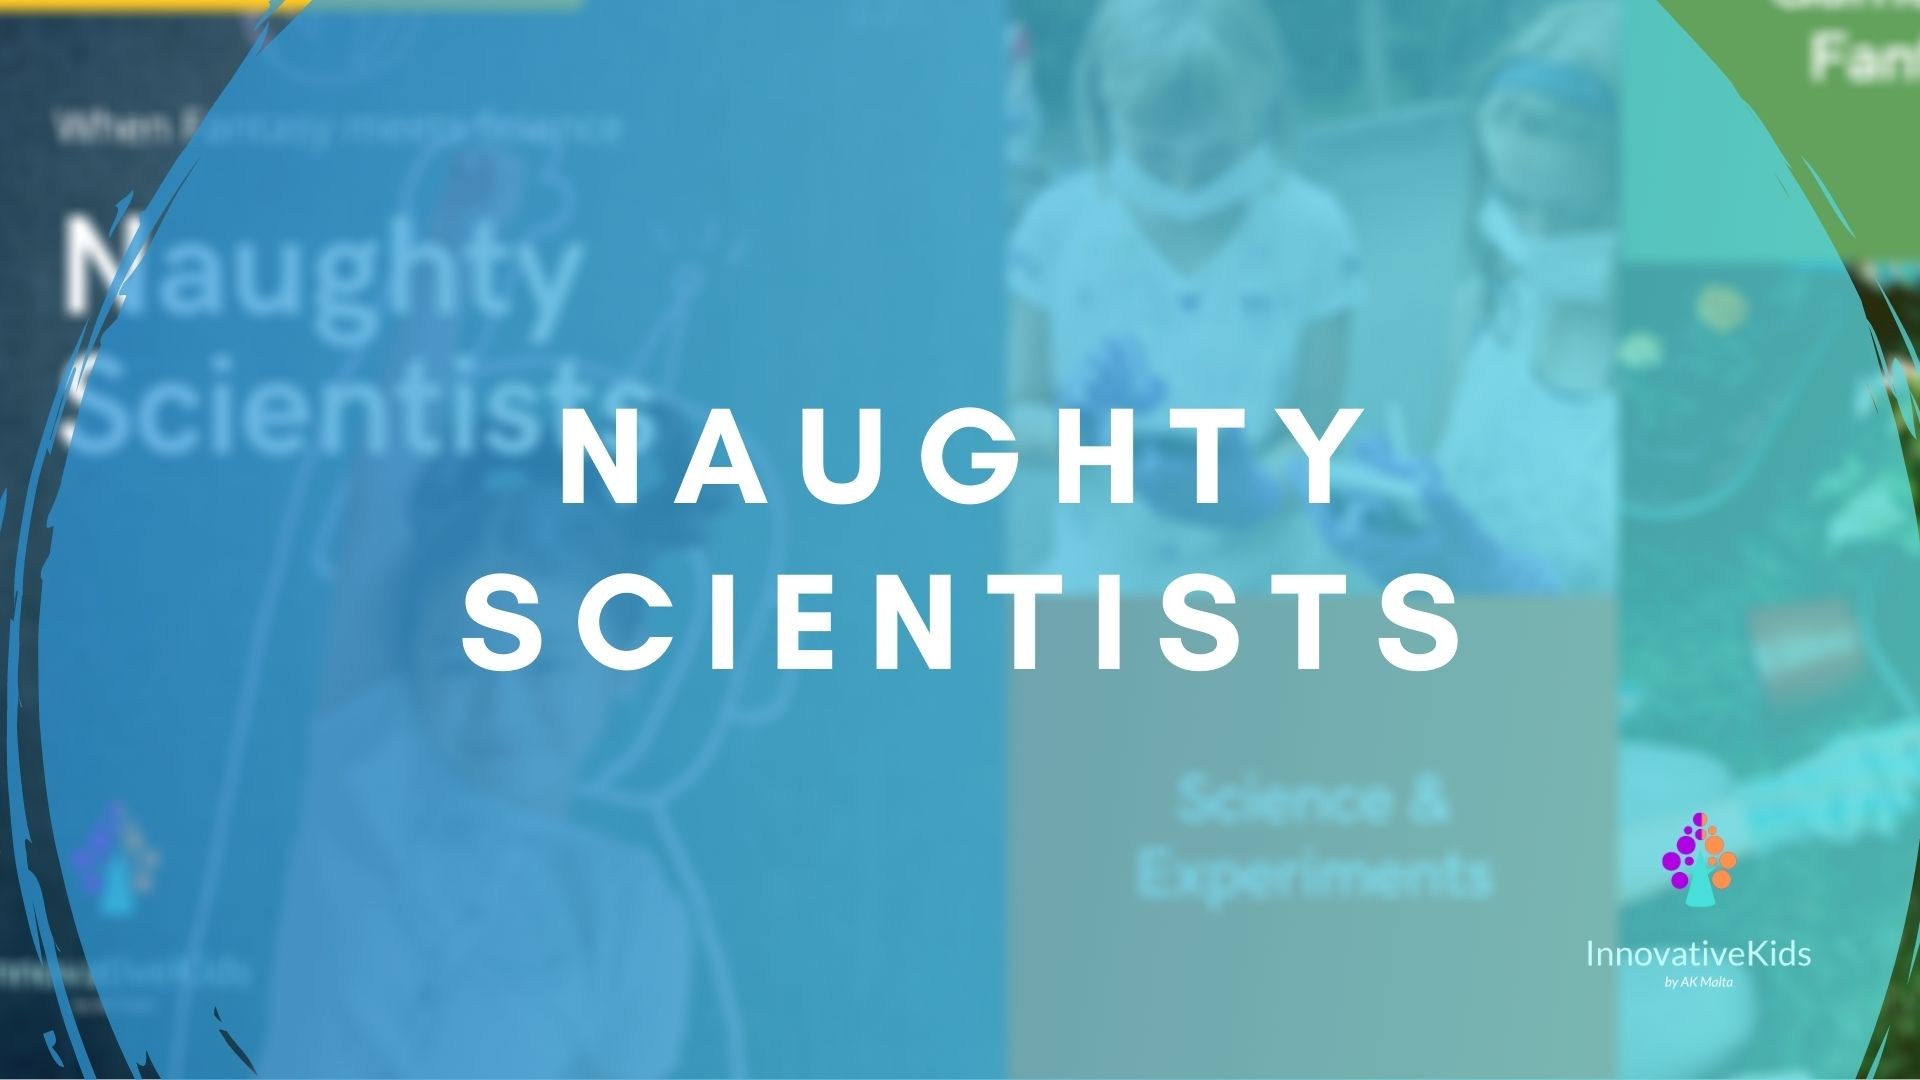 Naughty Scientists course 2021 by InnovativeKids